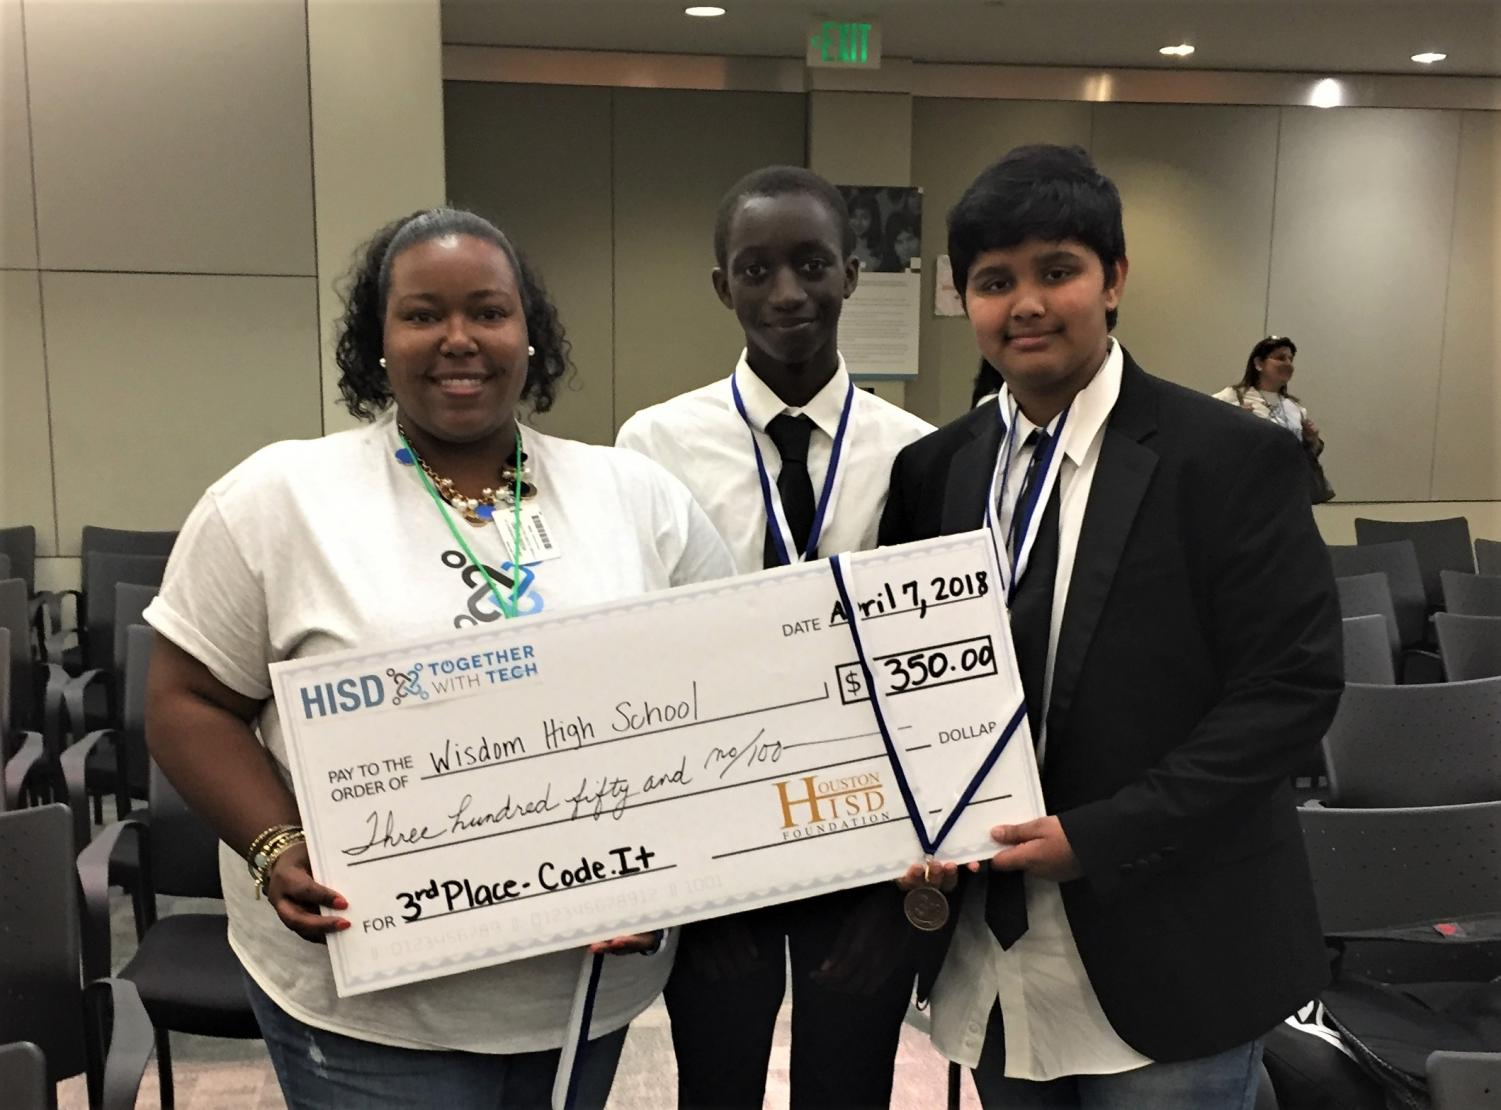 (L-R): Ms. Walker, Elhadji Toure & Sai Gurijala, represented Wisdom at the recent HISD Technology Contest